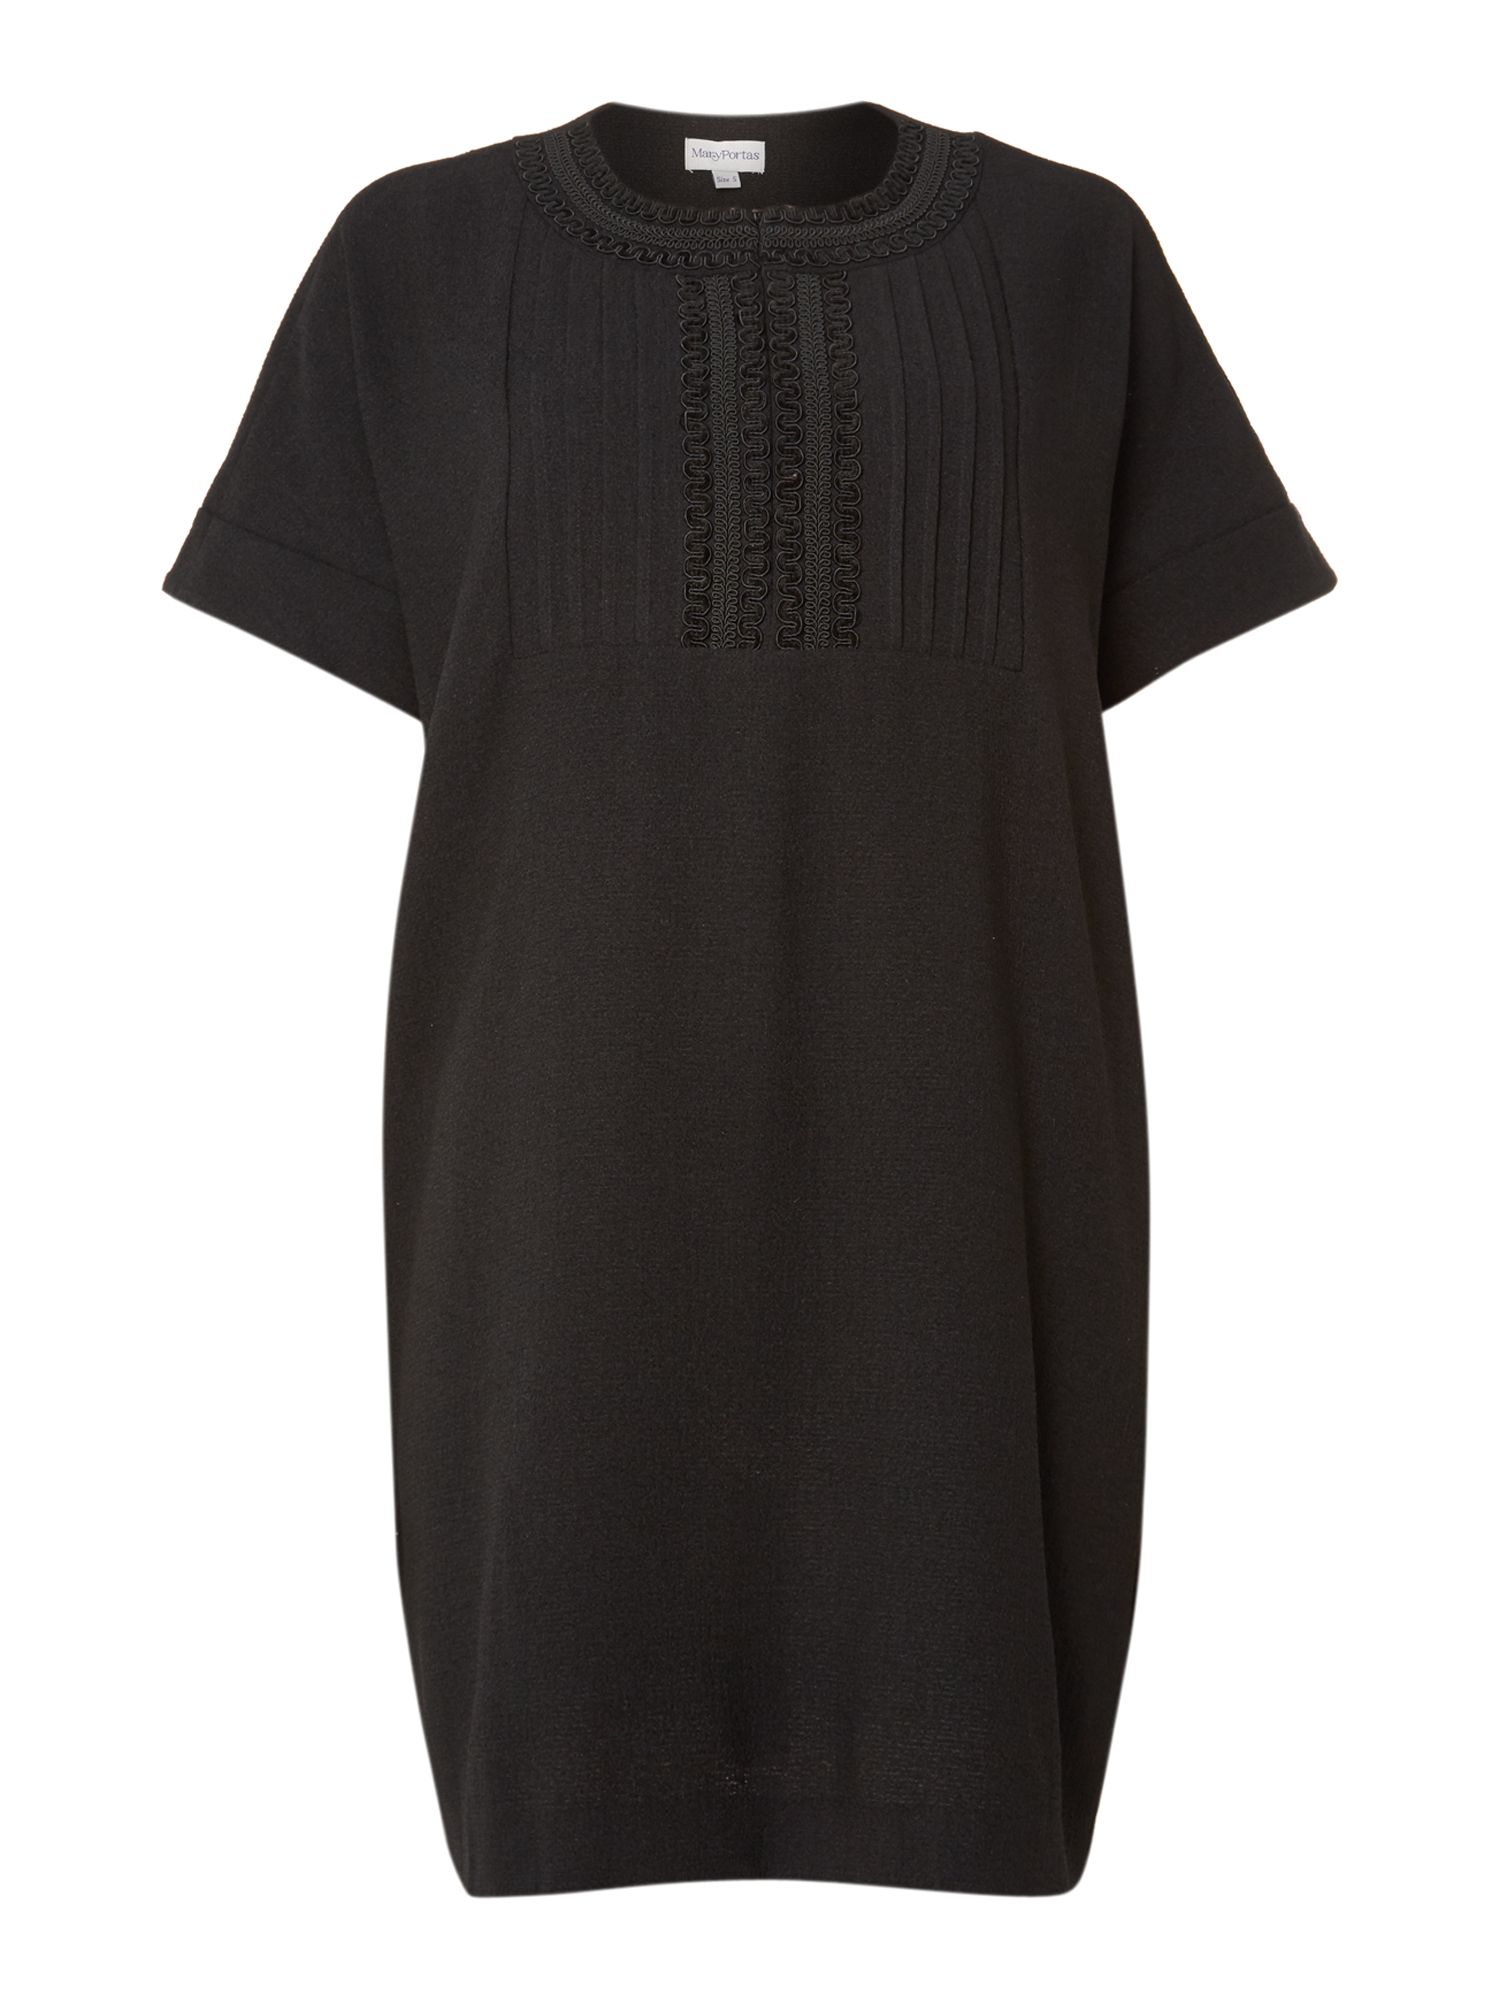 The square emb placket no-brainer dress